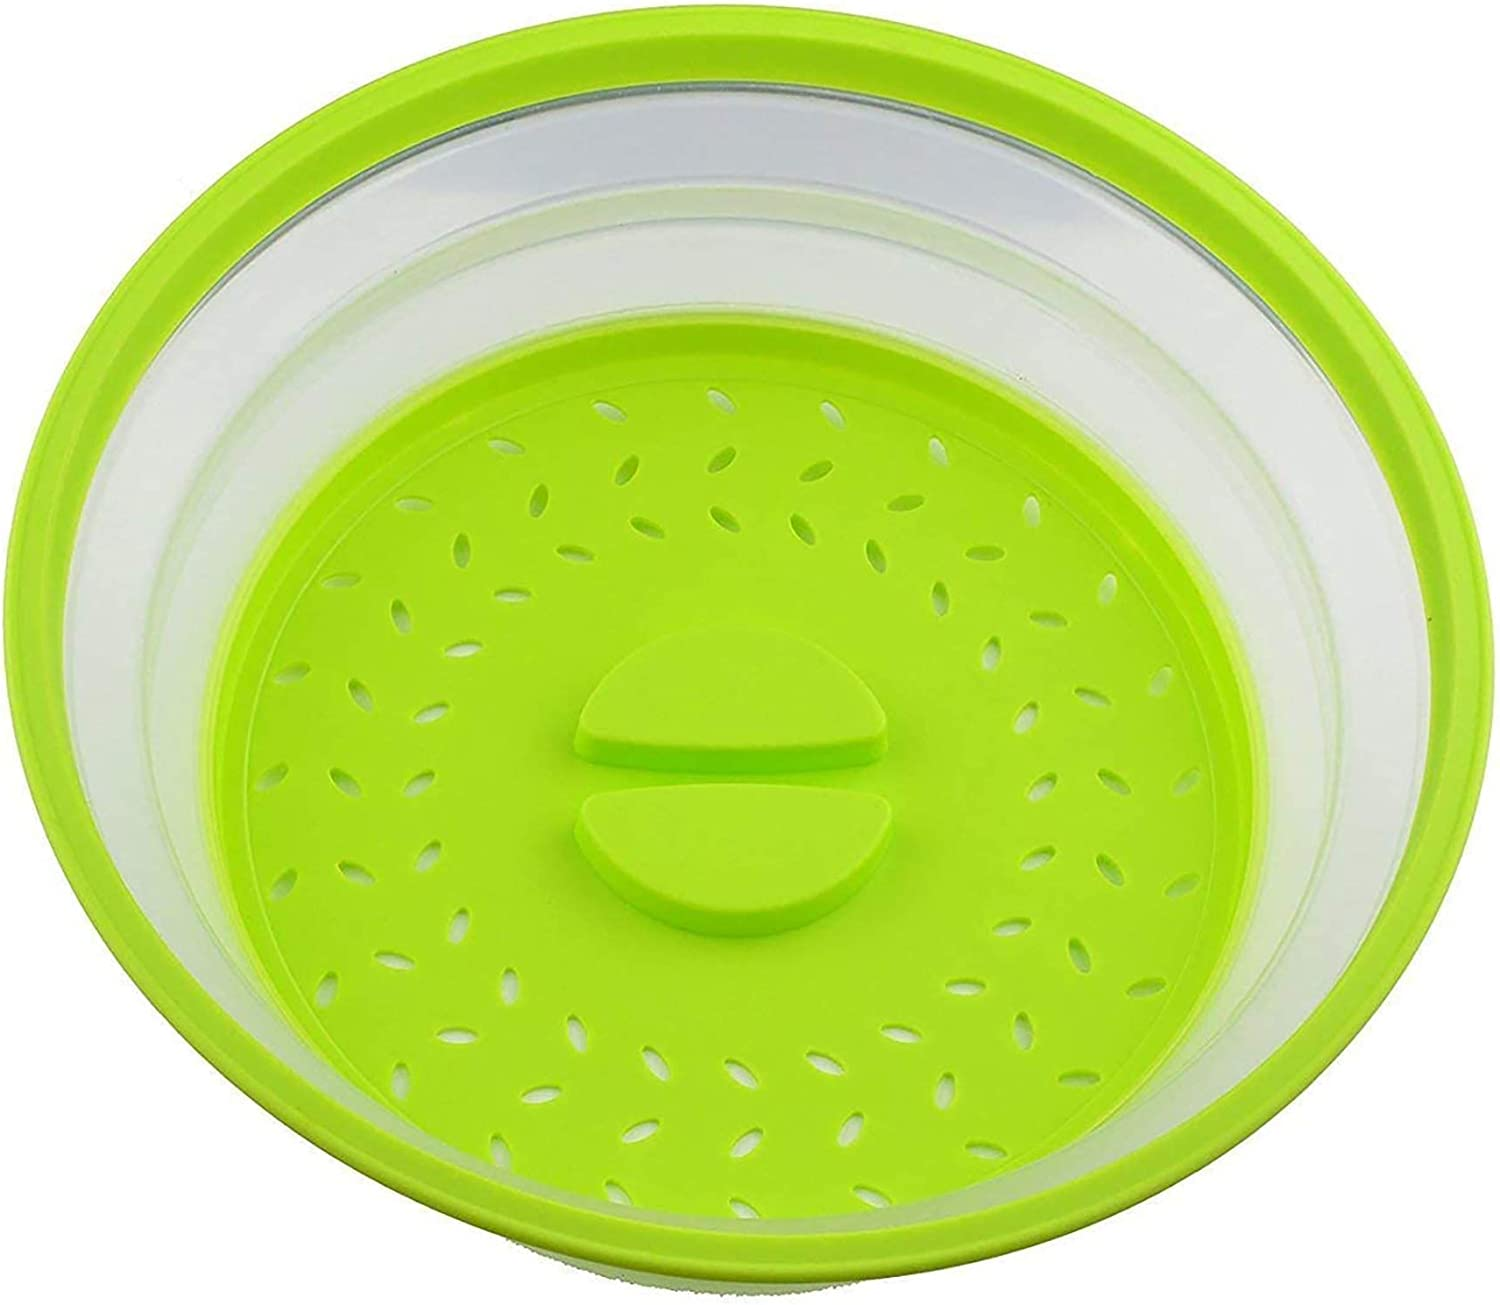 2Pcs JIUKE Vented Collapsible Microwave Cover for Food,Splatter Proof Guard Plate,Multipurpose Fruit and Vegetable Dish Drainer Basket,Easy Grip Dishwasher Safe,BPA-Free Silicone /& Plastic